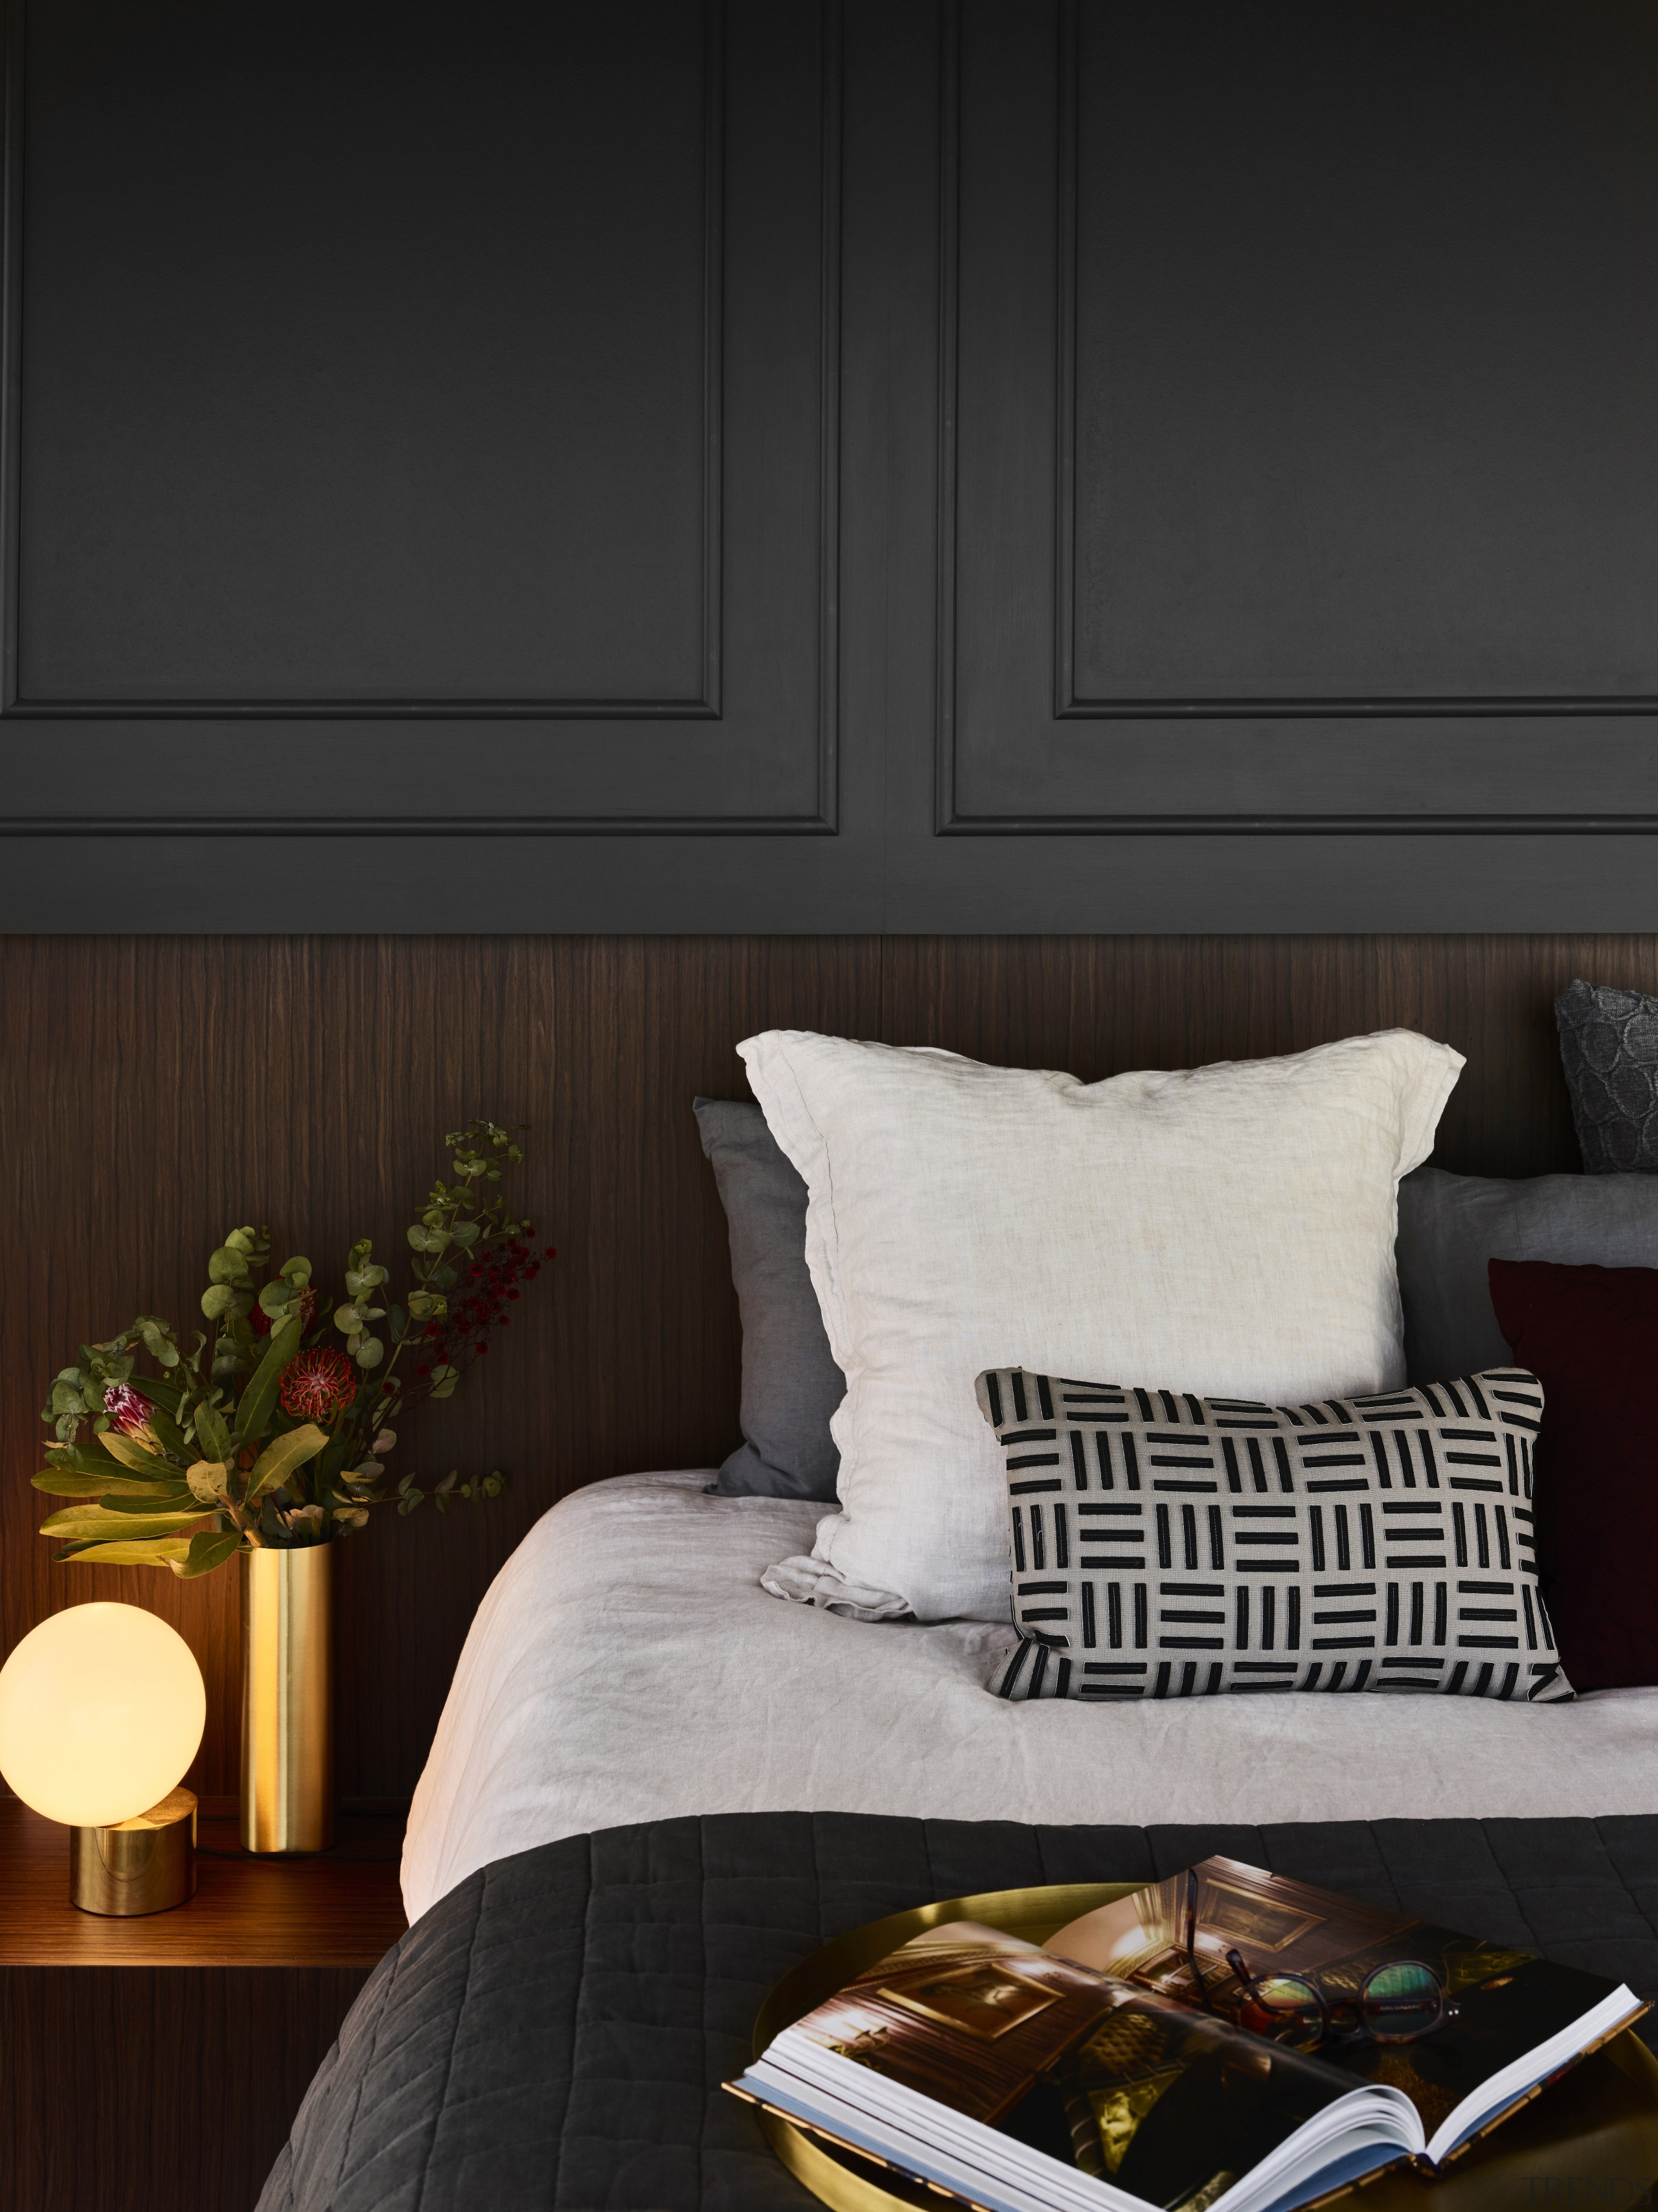 Catering to the owners' desire for a pampered bed, bed frame, bed sheet, bedding, bedroom, black, brown, comfort, cushion, design, duvet cover, floor, furniture, hardwood, home, house, interior design, lighting, nightstand, pillow, room, textile, wall, wood, black